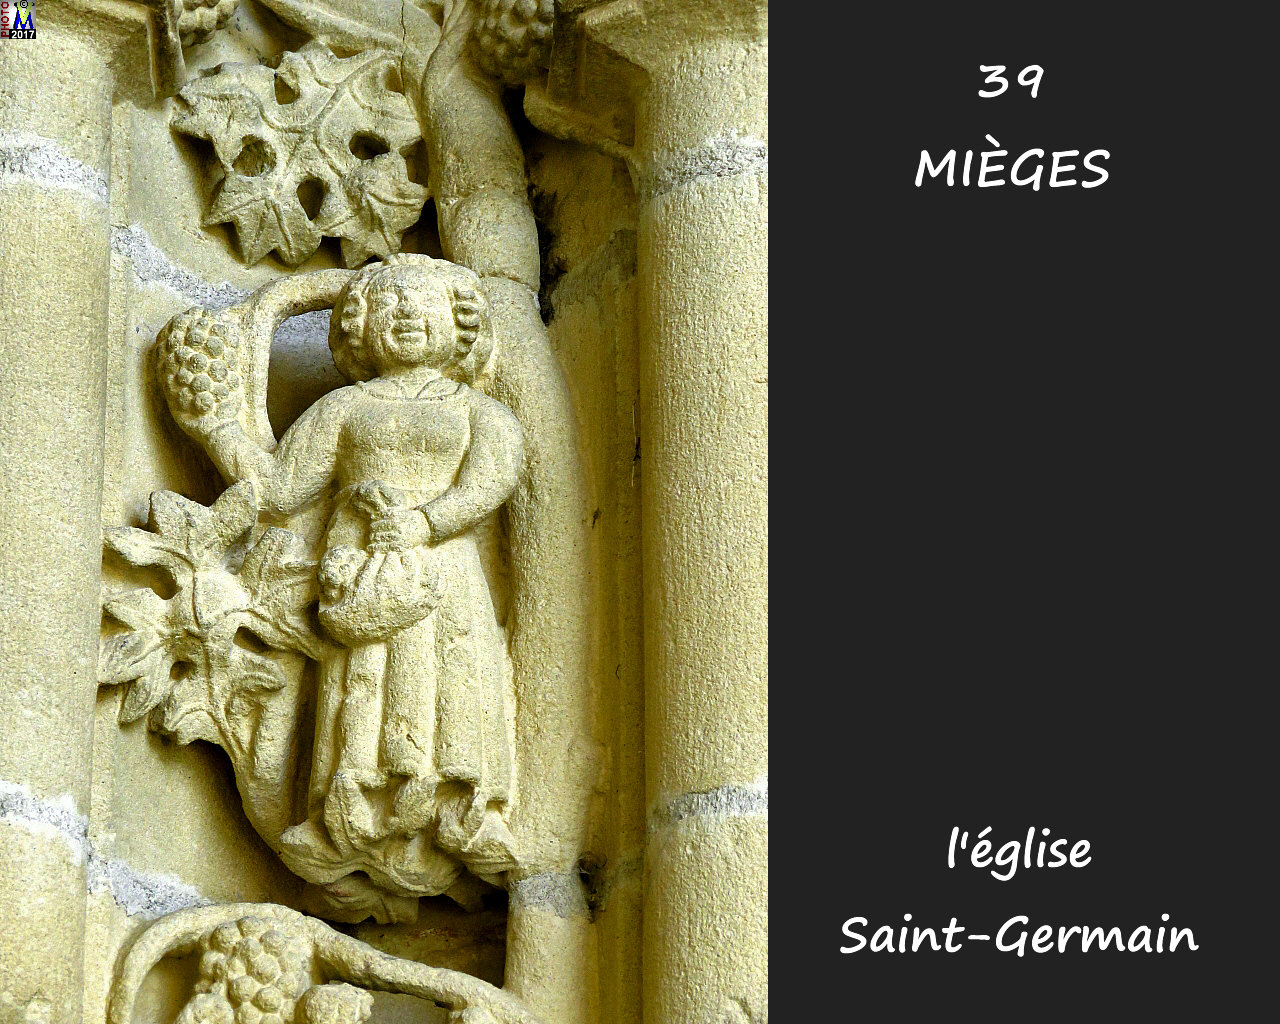 39MIEGES_eglise_128.jpg